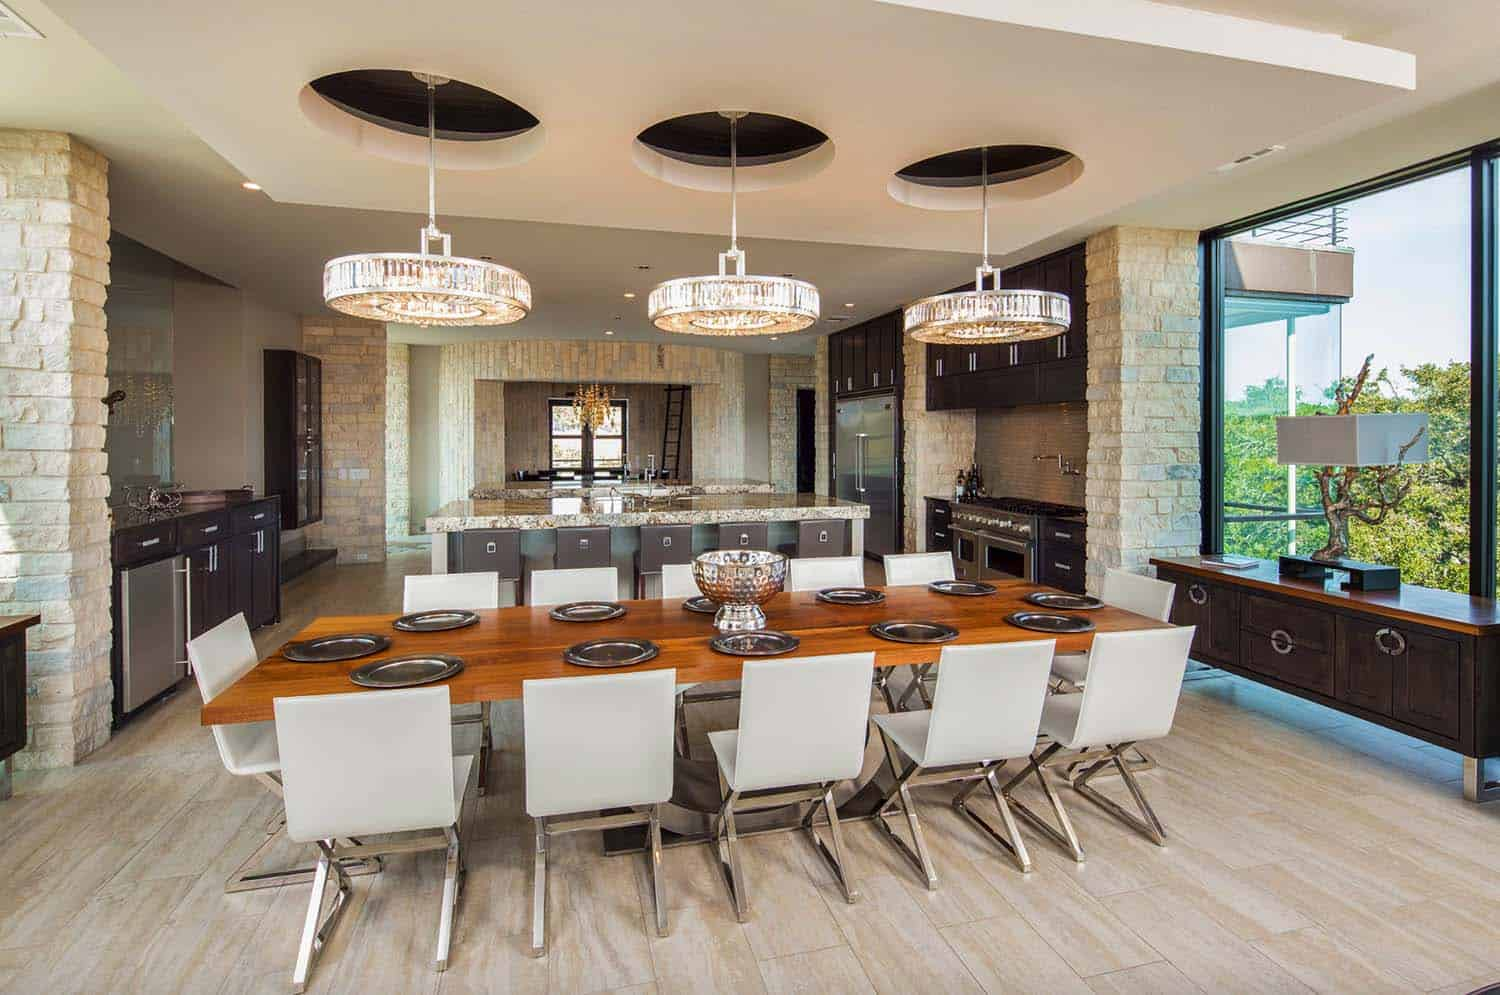 dining-room-large-windows-contemporary-dining-room